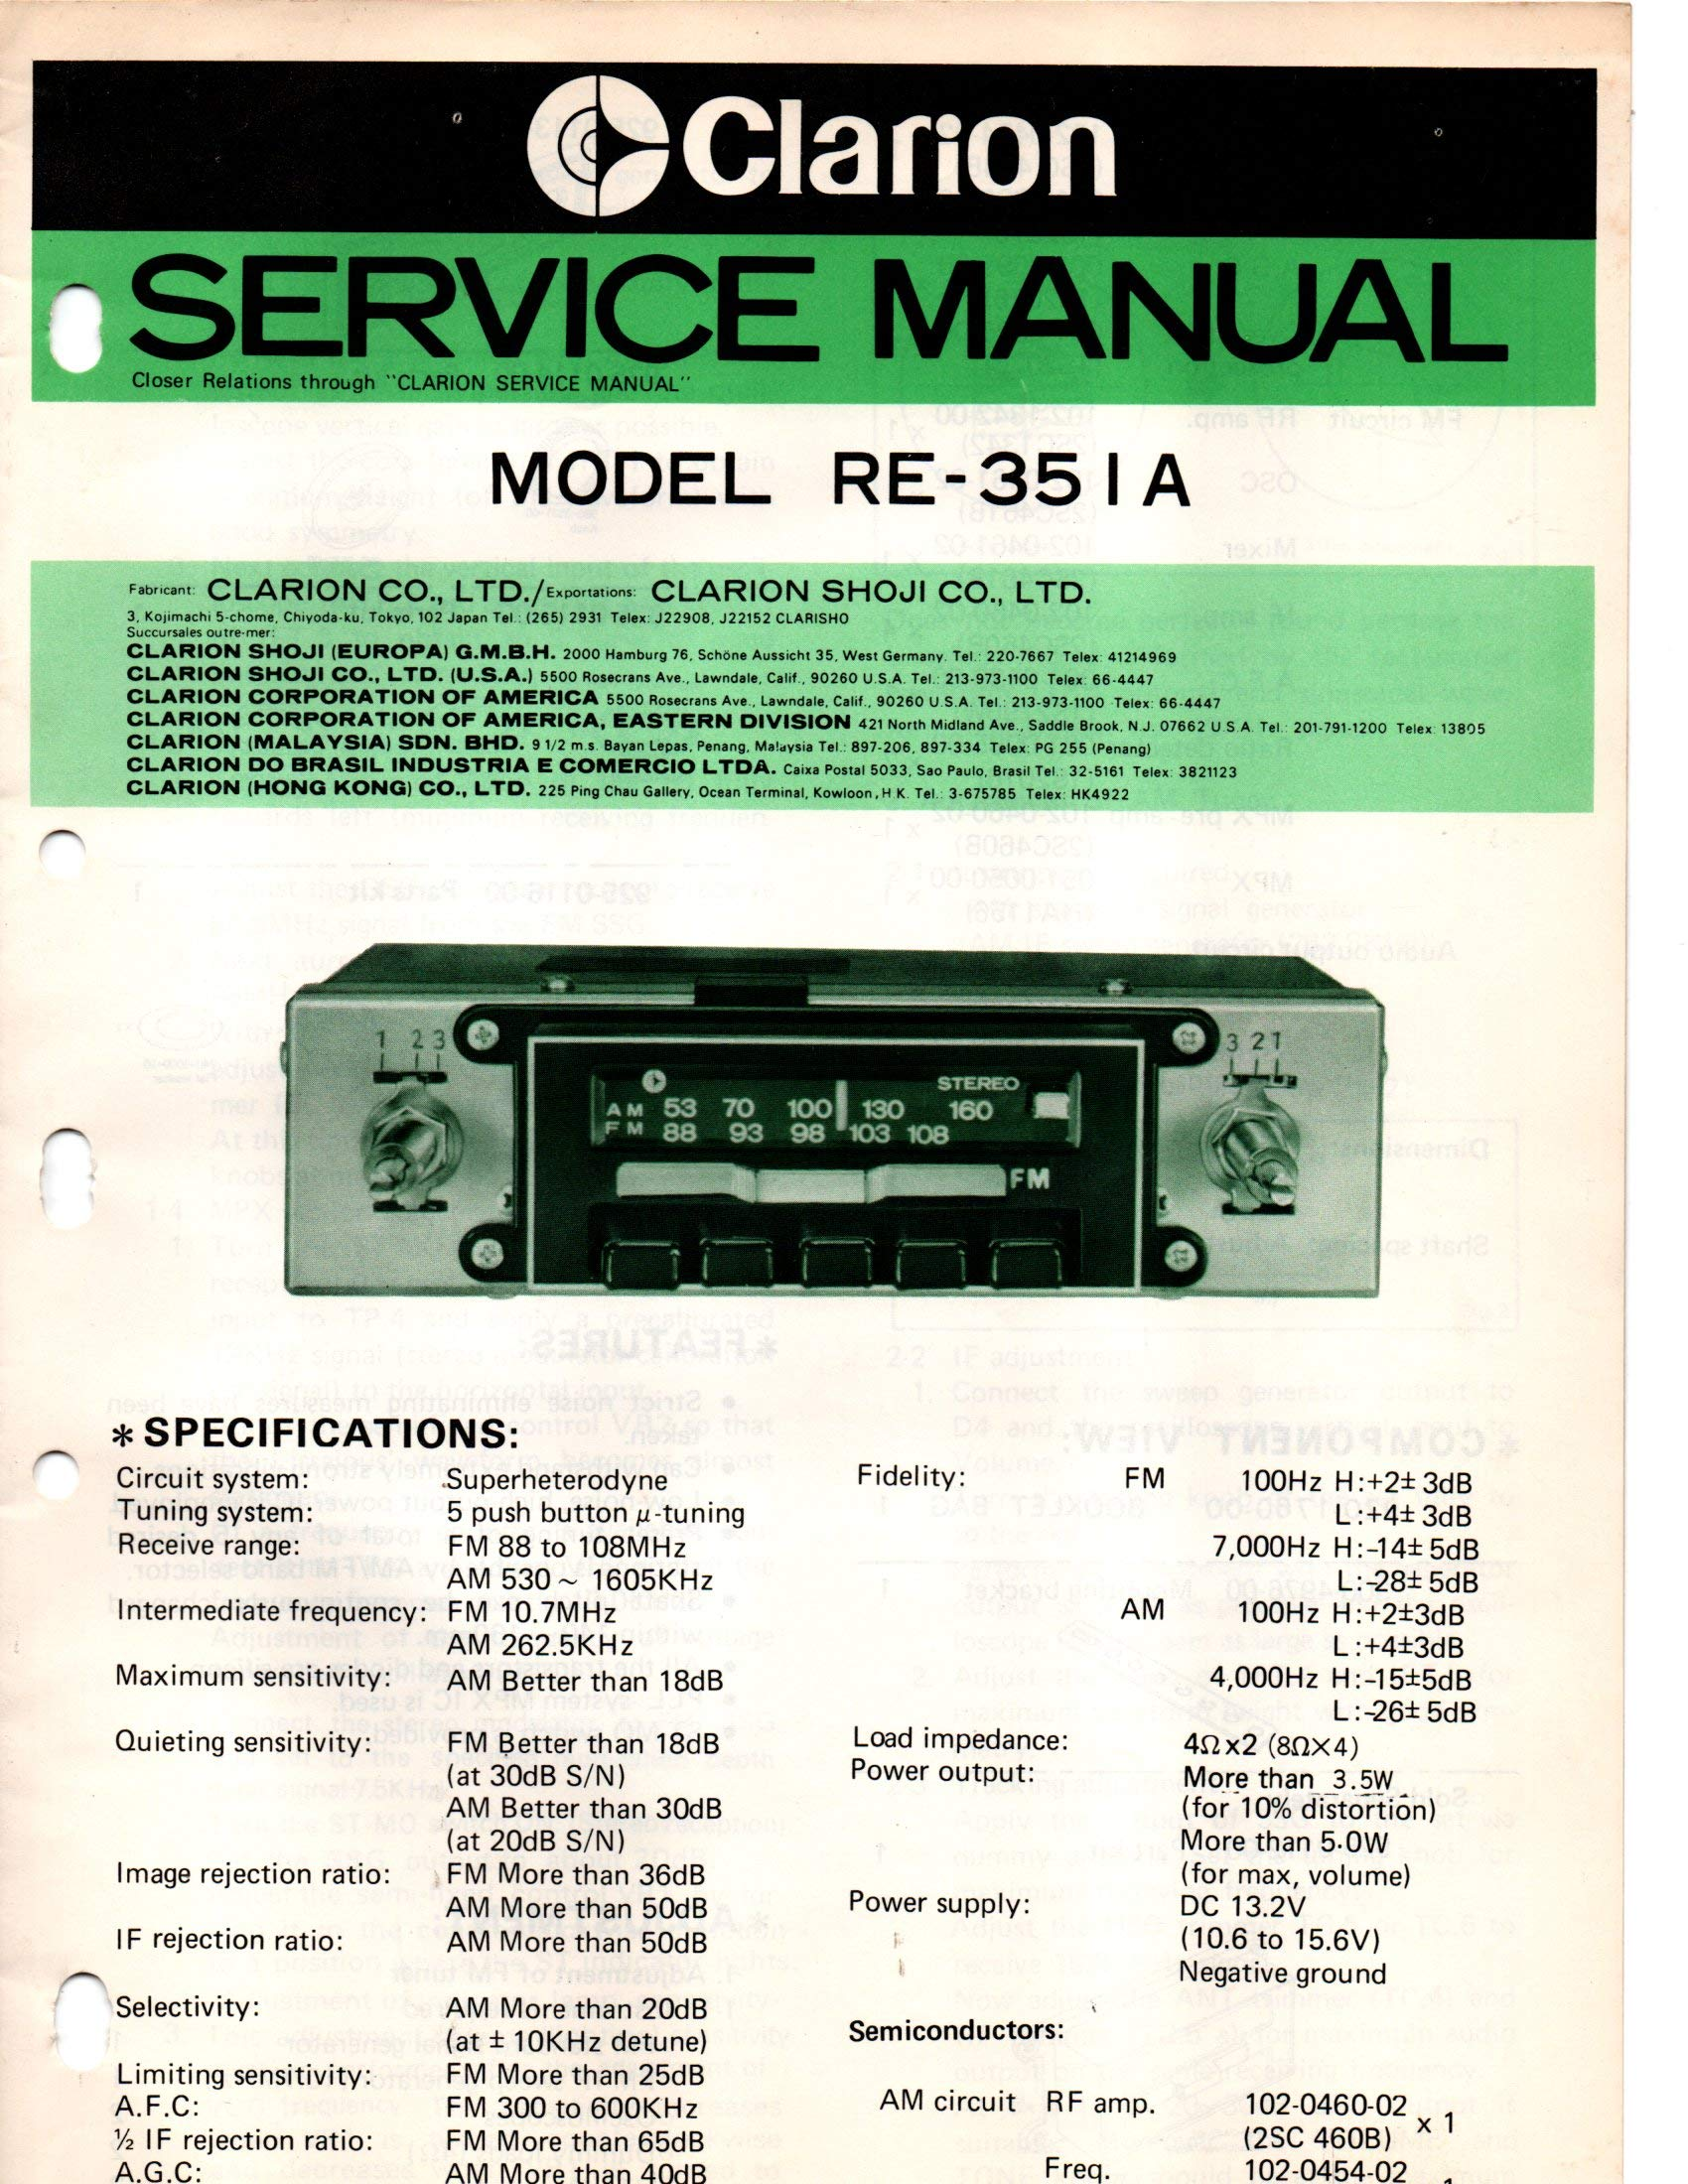 5915a59 service manual for clarion re-351a am fm stereo car radio ... |  wiring library  wiring library